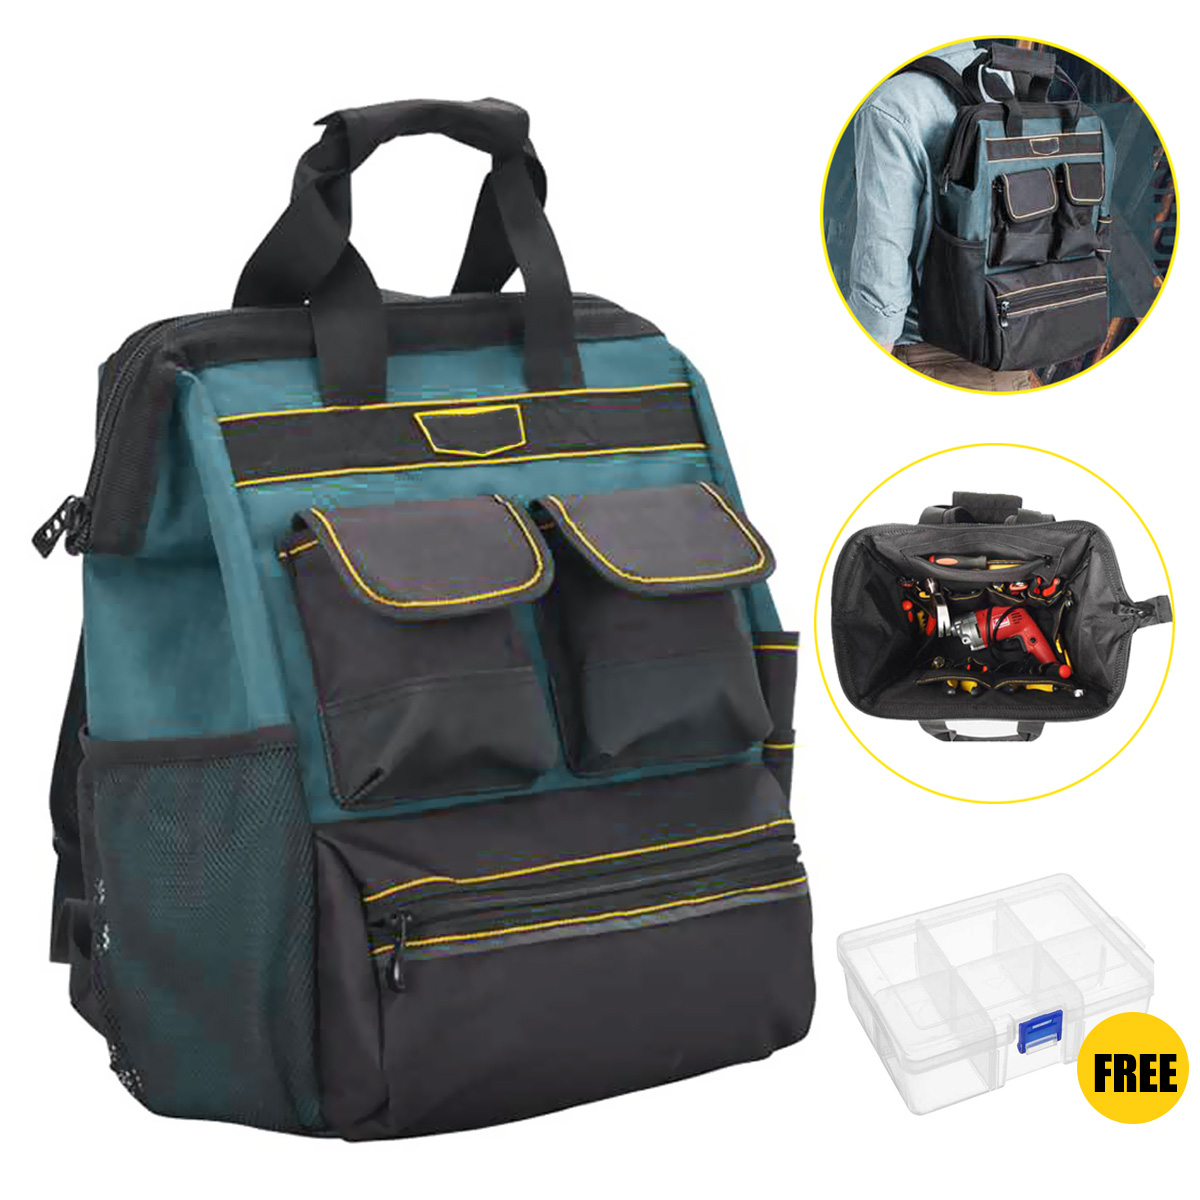 21 Pockets Oxford Cloth Double Shoulder Electrician Tool Backpack High-density Multifunction Large Capacity Maintenance Tool Bag 27 bags large capacity electrician oxford tools bag waterproof single shoulder multifunction repair thicken instrument case